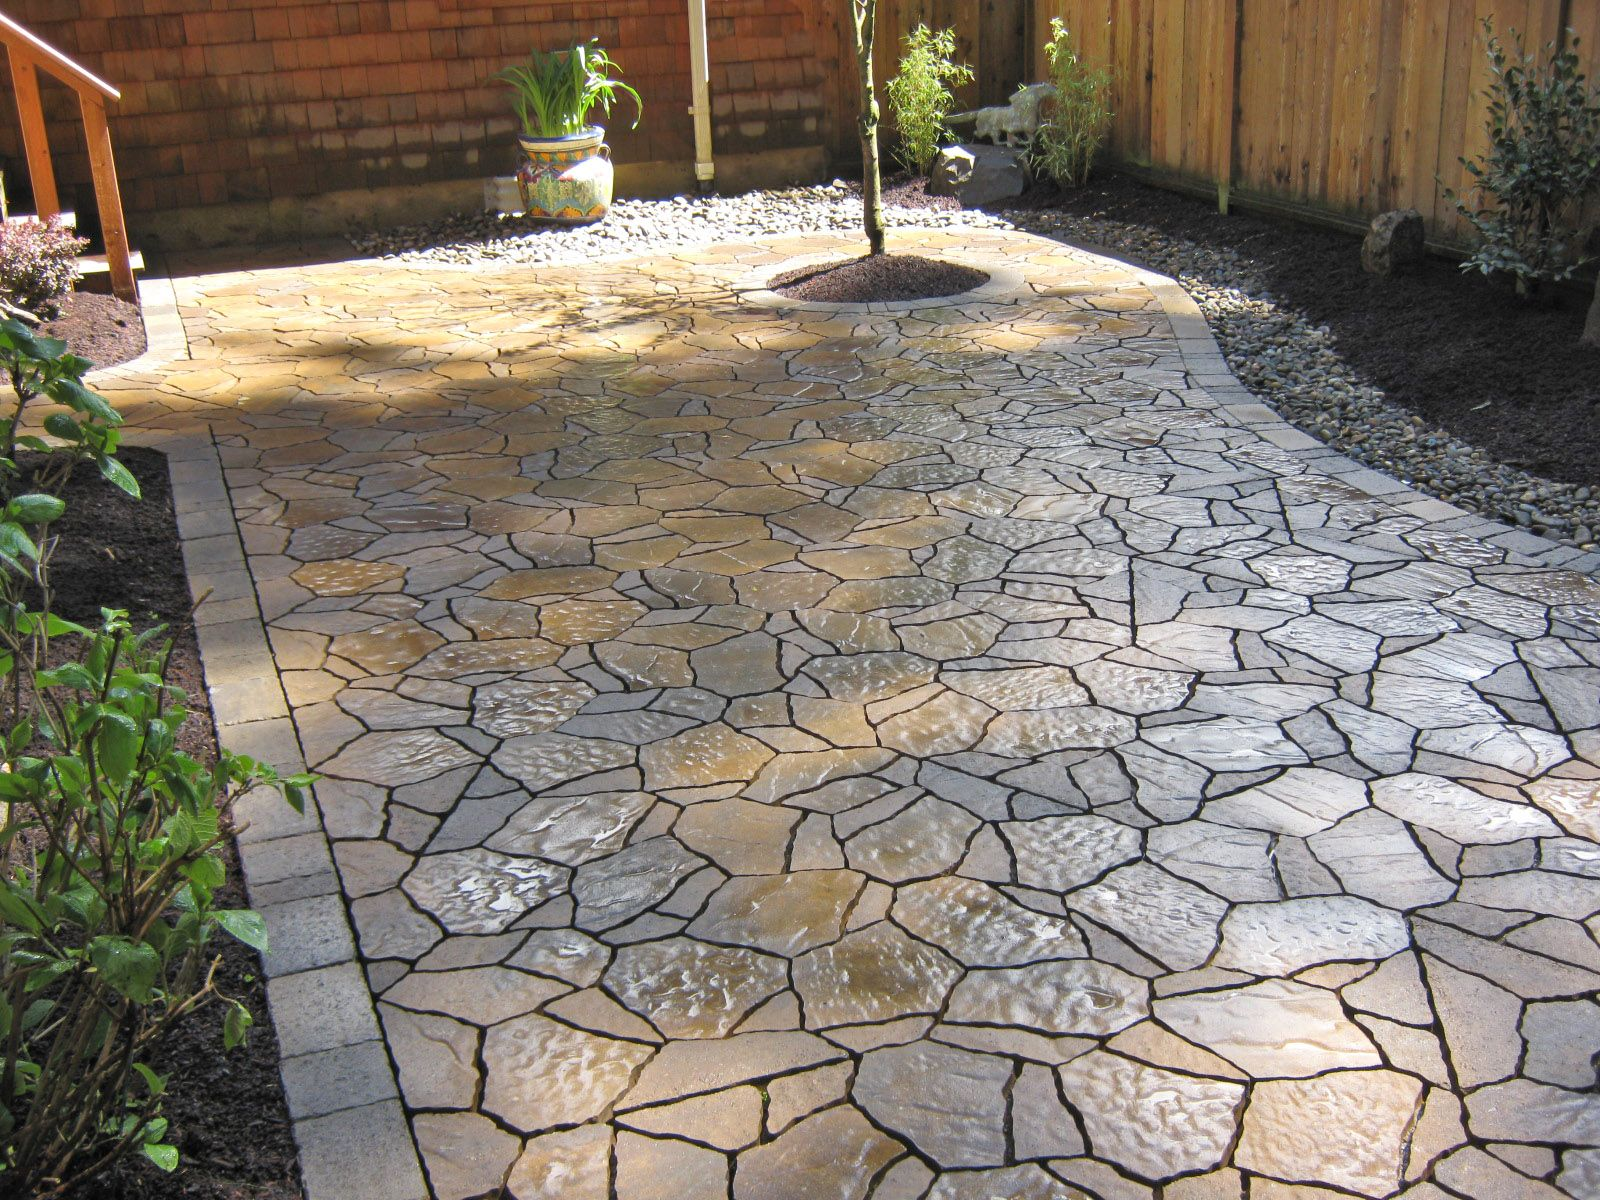 Stone patio ideas landscape archives dennis 39 7 dees for How to build a river rock patio